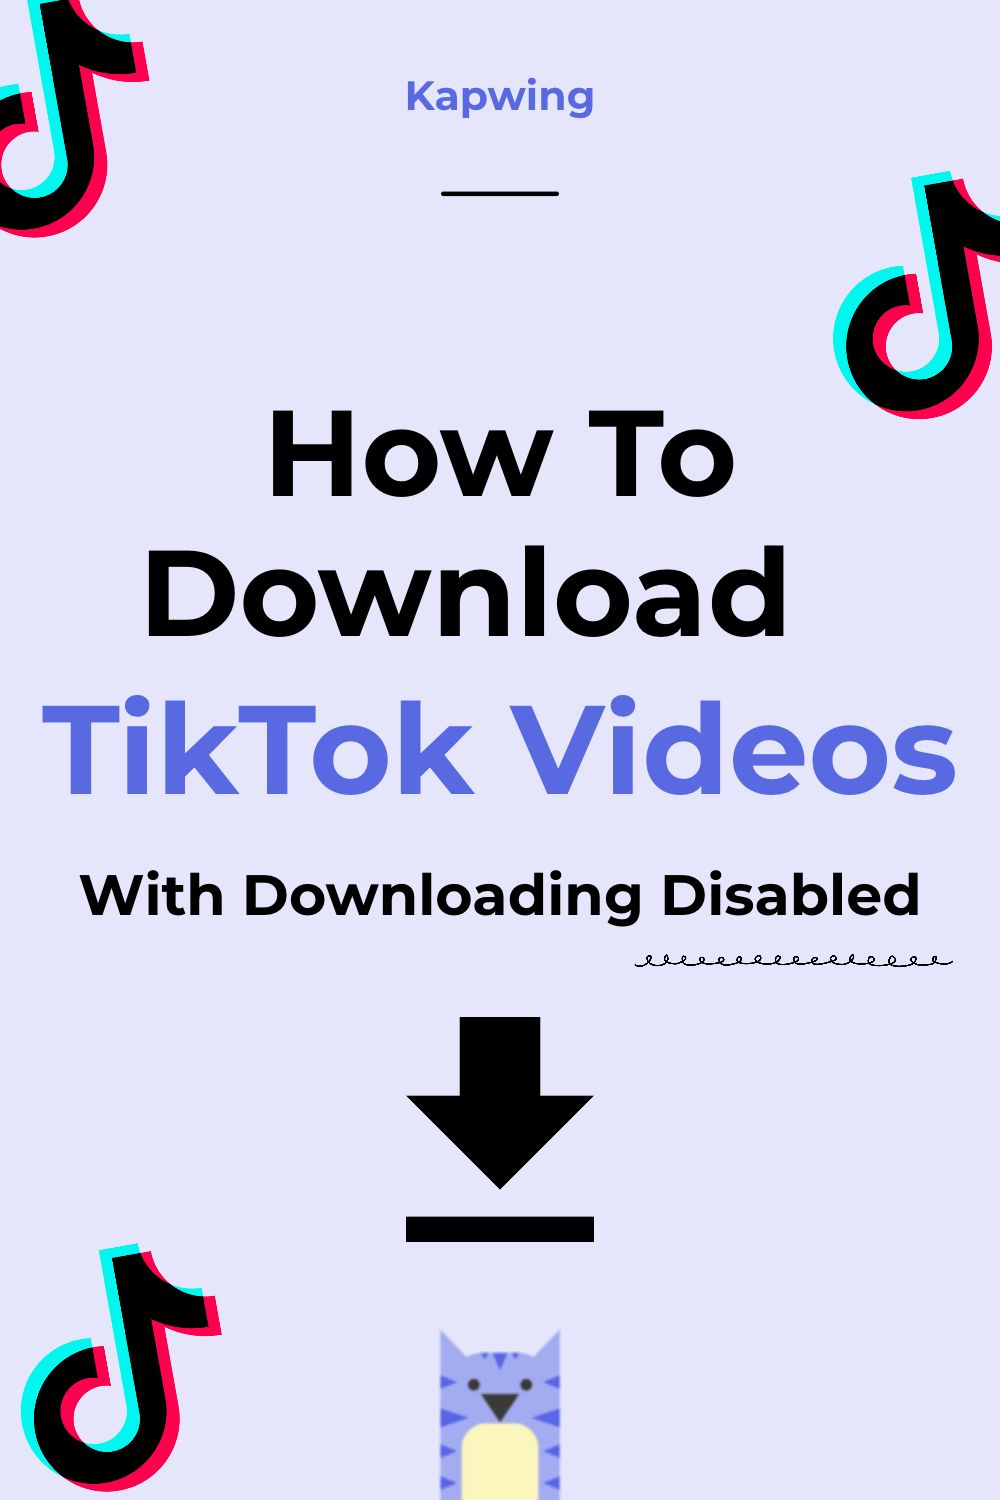 How To Download Tiktok Videos Videos Disability Download